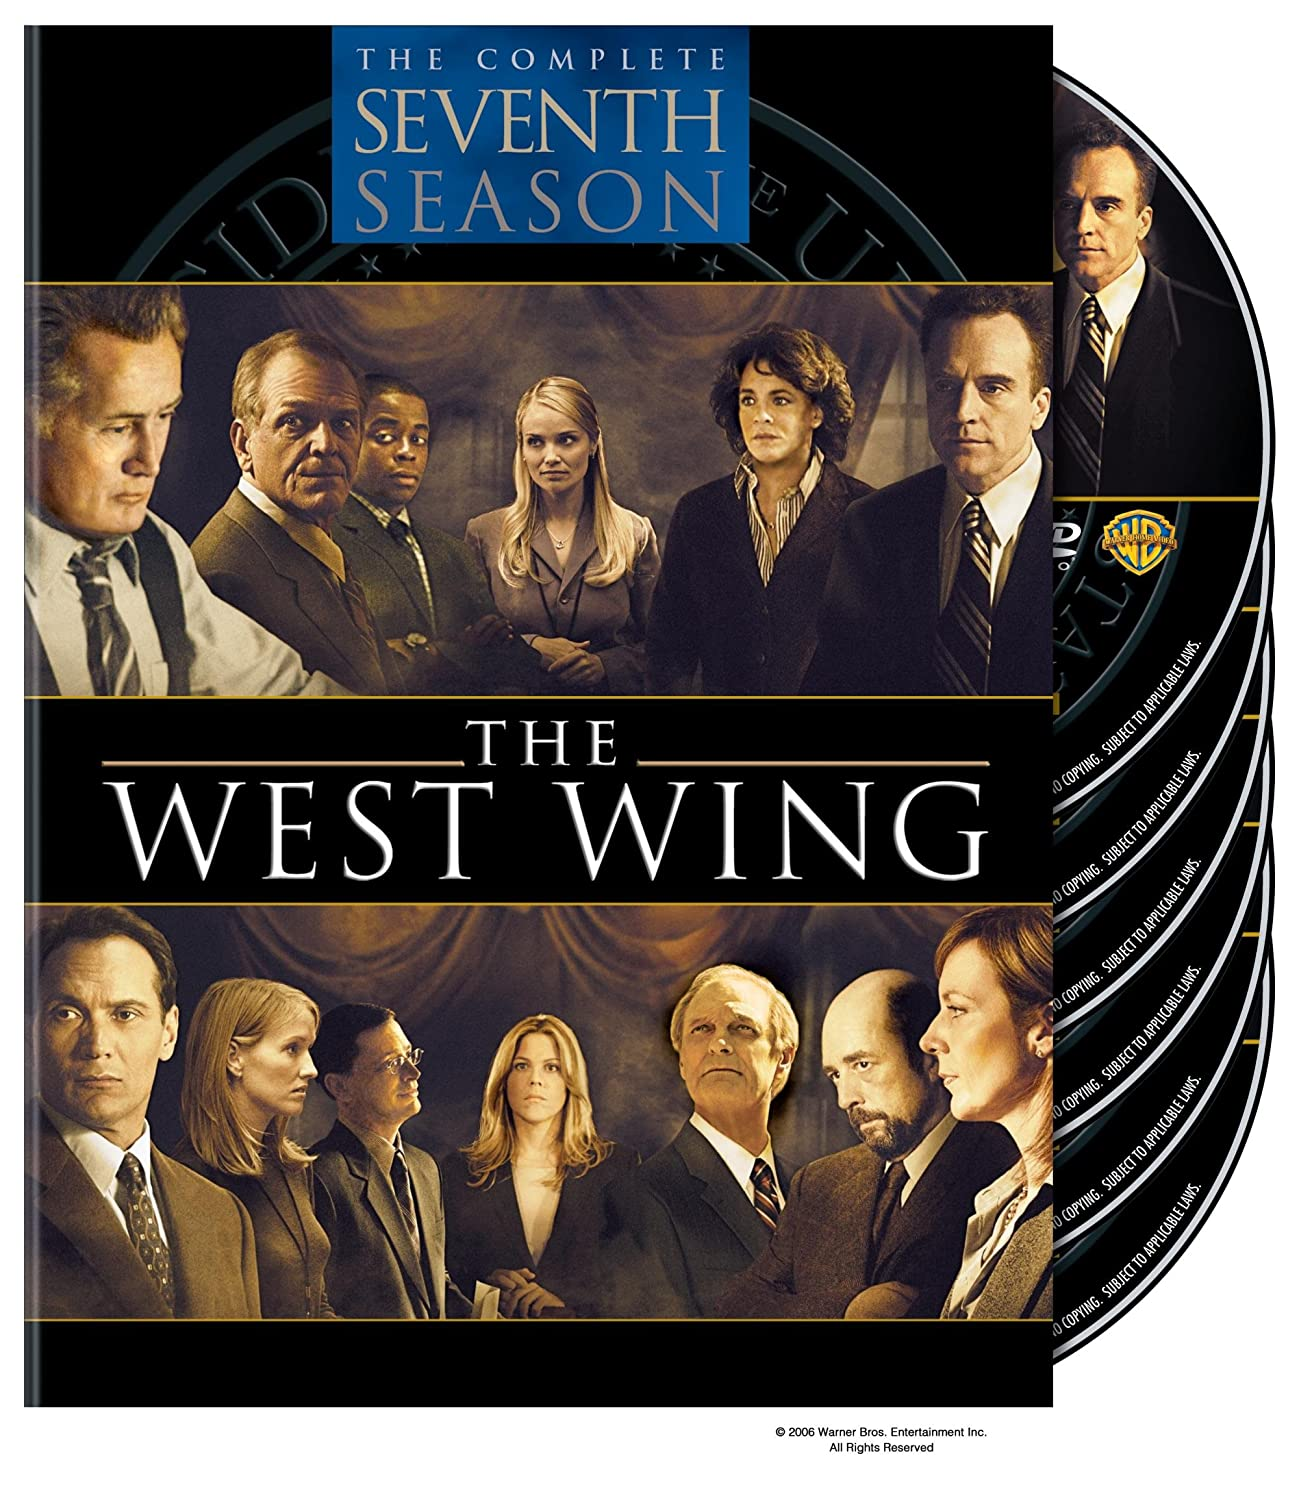 the west wing tv series season 7 dvd 2006 6 disc set box set 7321900818889 ebay. Black Bedroom Furniture Sets. Home Design Ideas